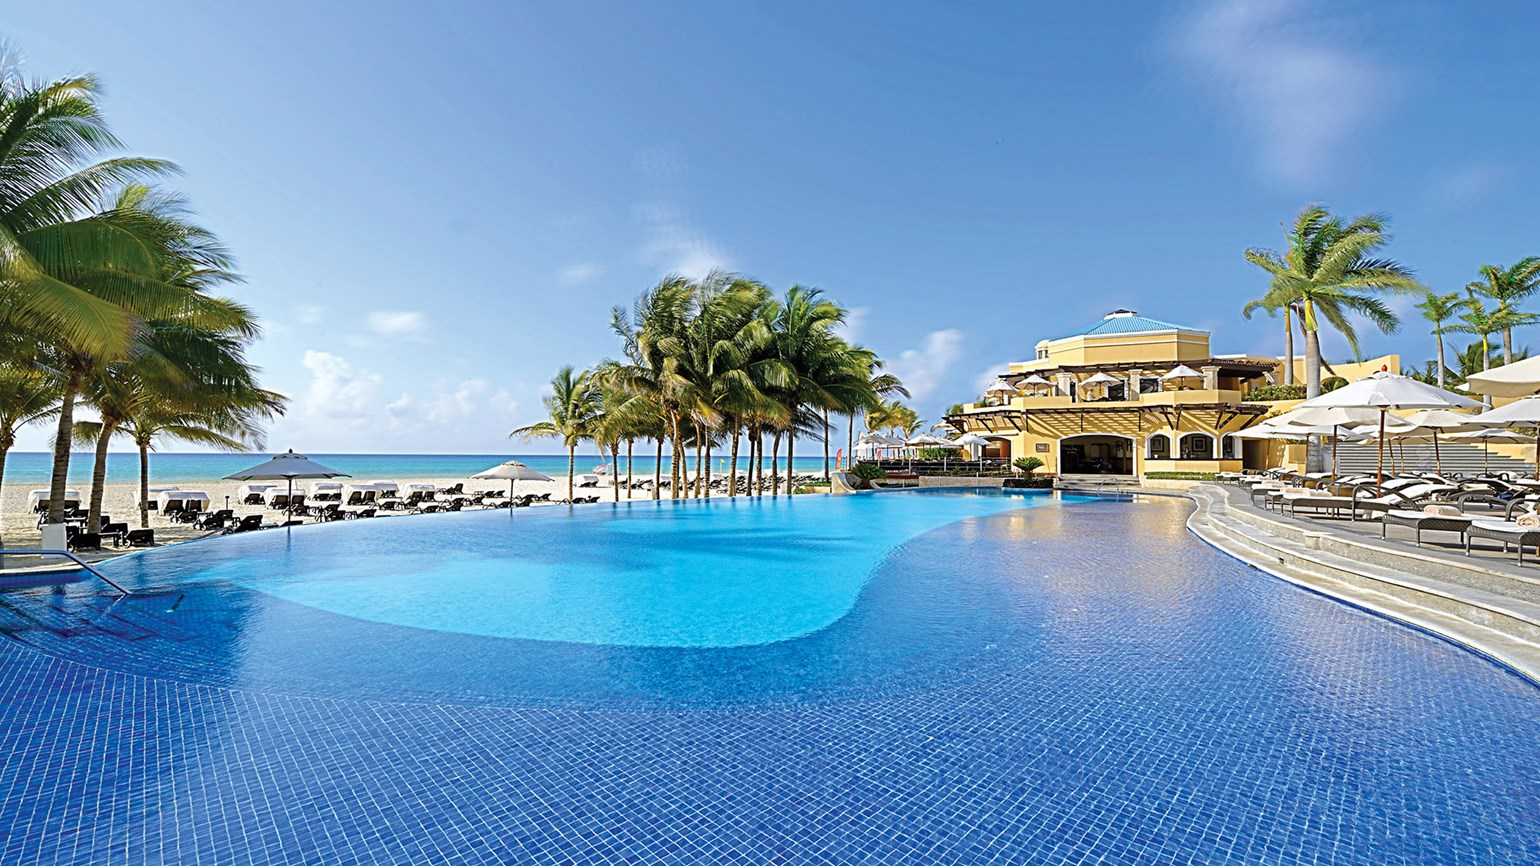 Everything old is new again at Royal Hideaway Playacar